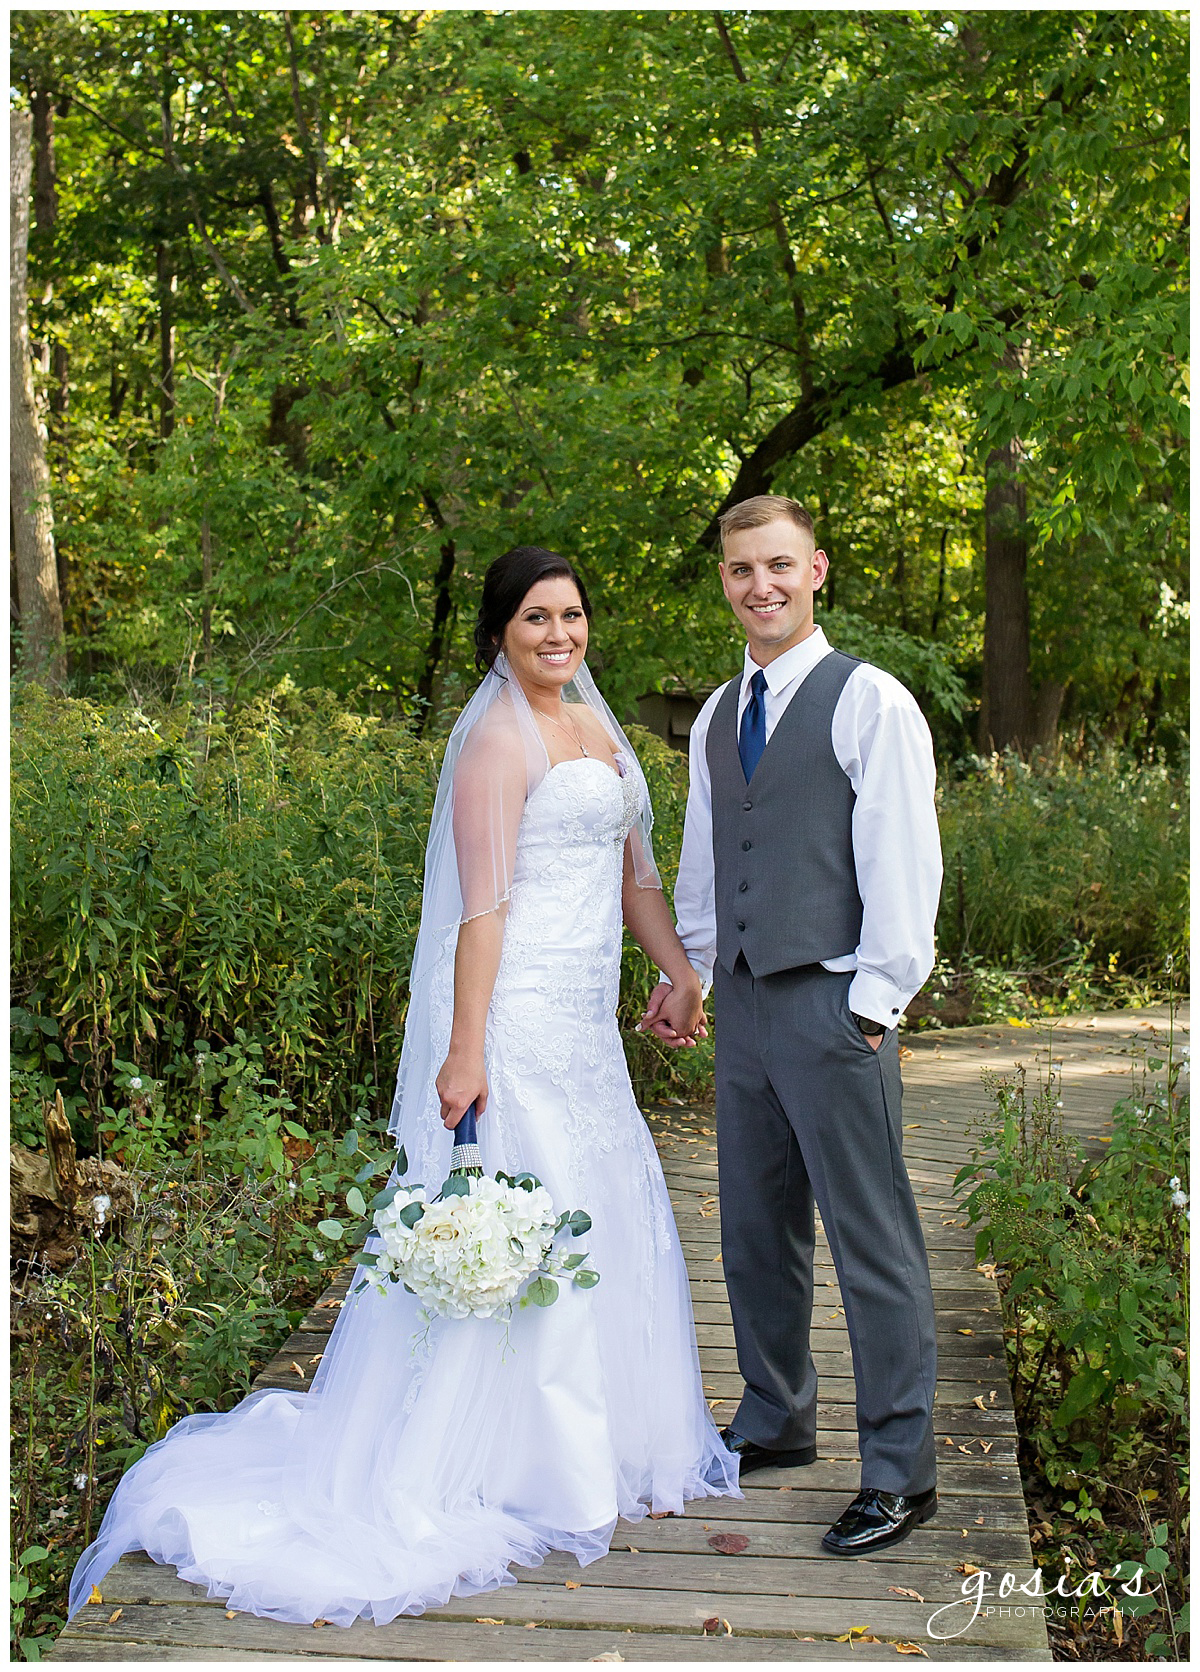 Gosias-Photography-wedding-photographer-Appleton-Kaukauna-ceremony-reception-Darboy-Club-_0019.jpg